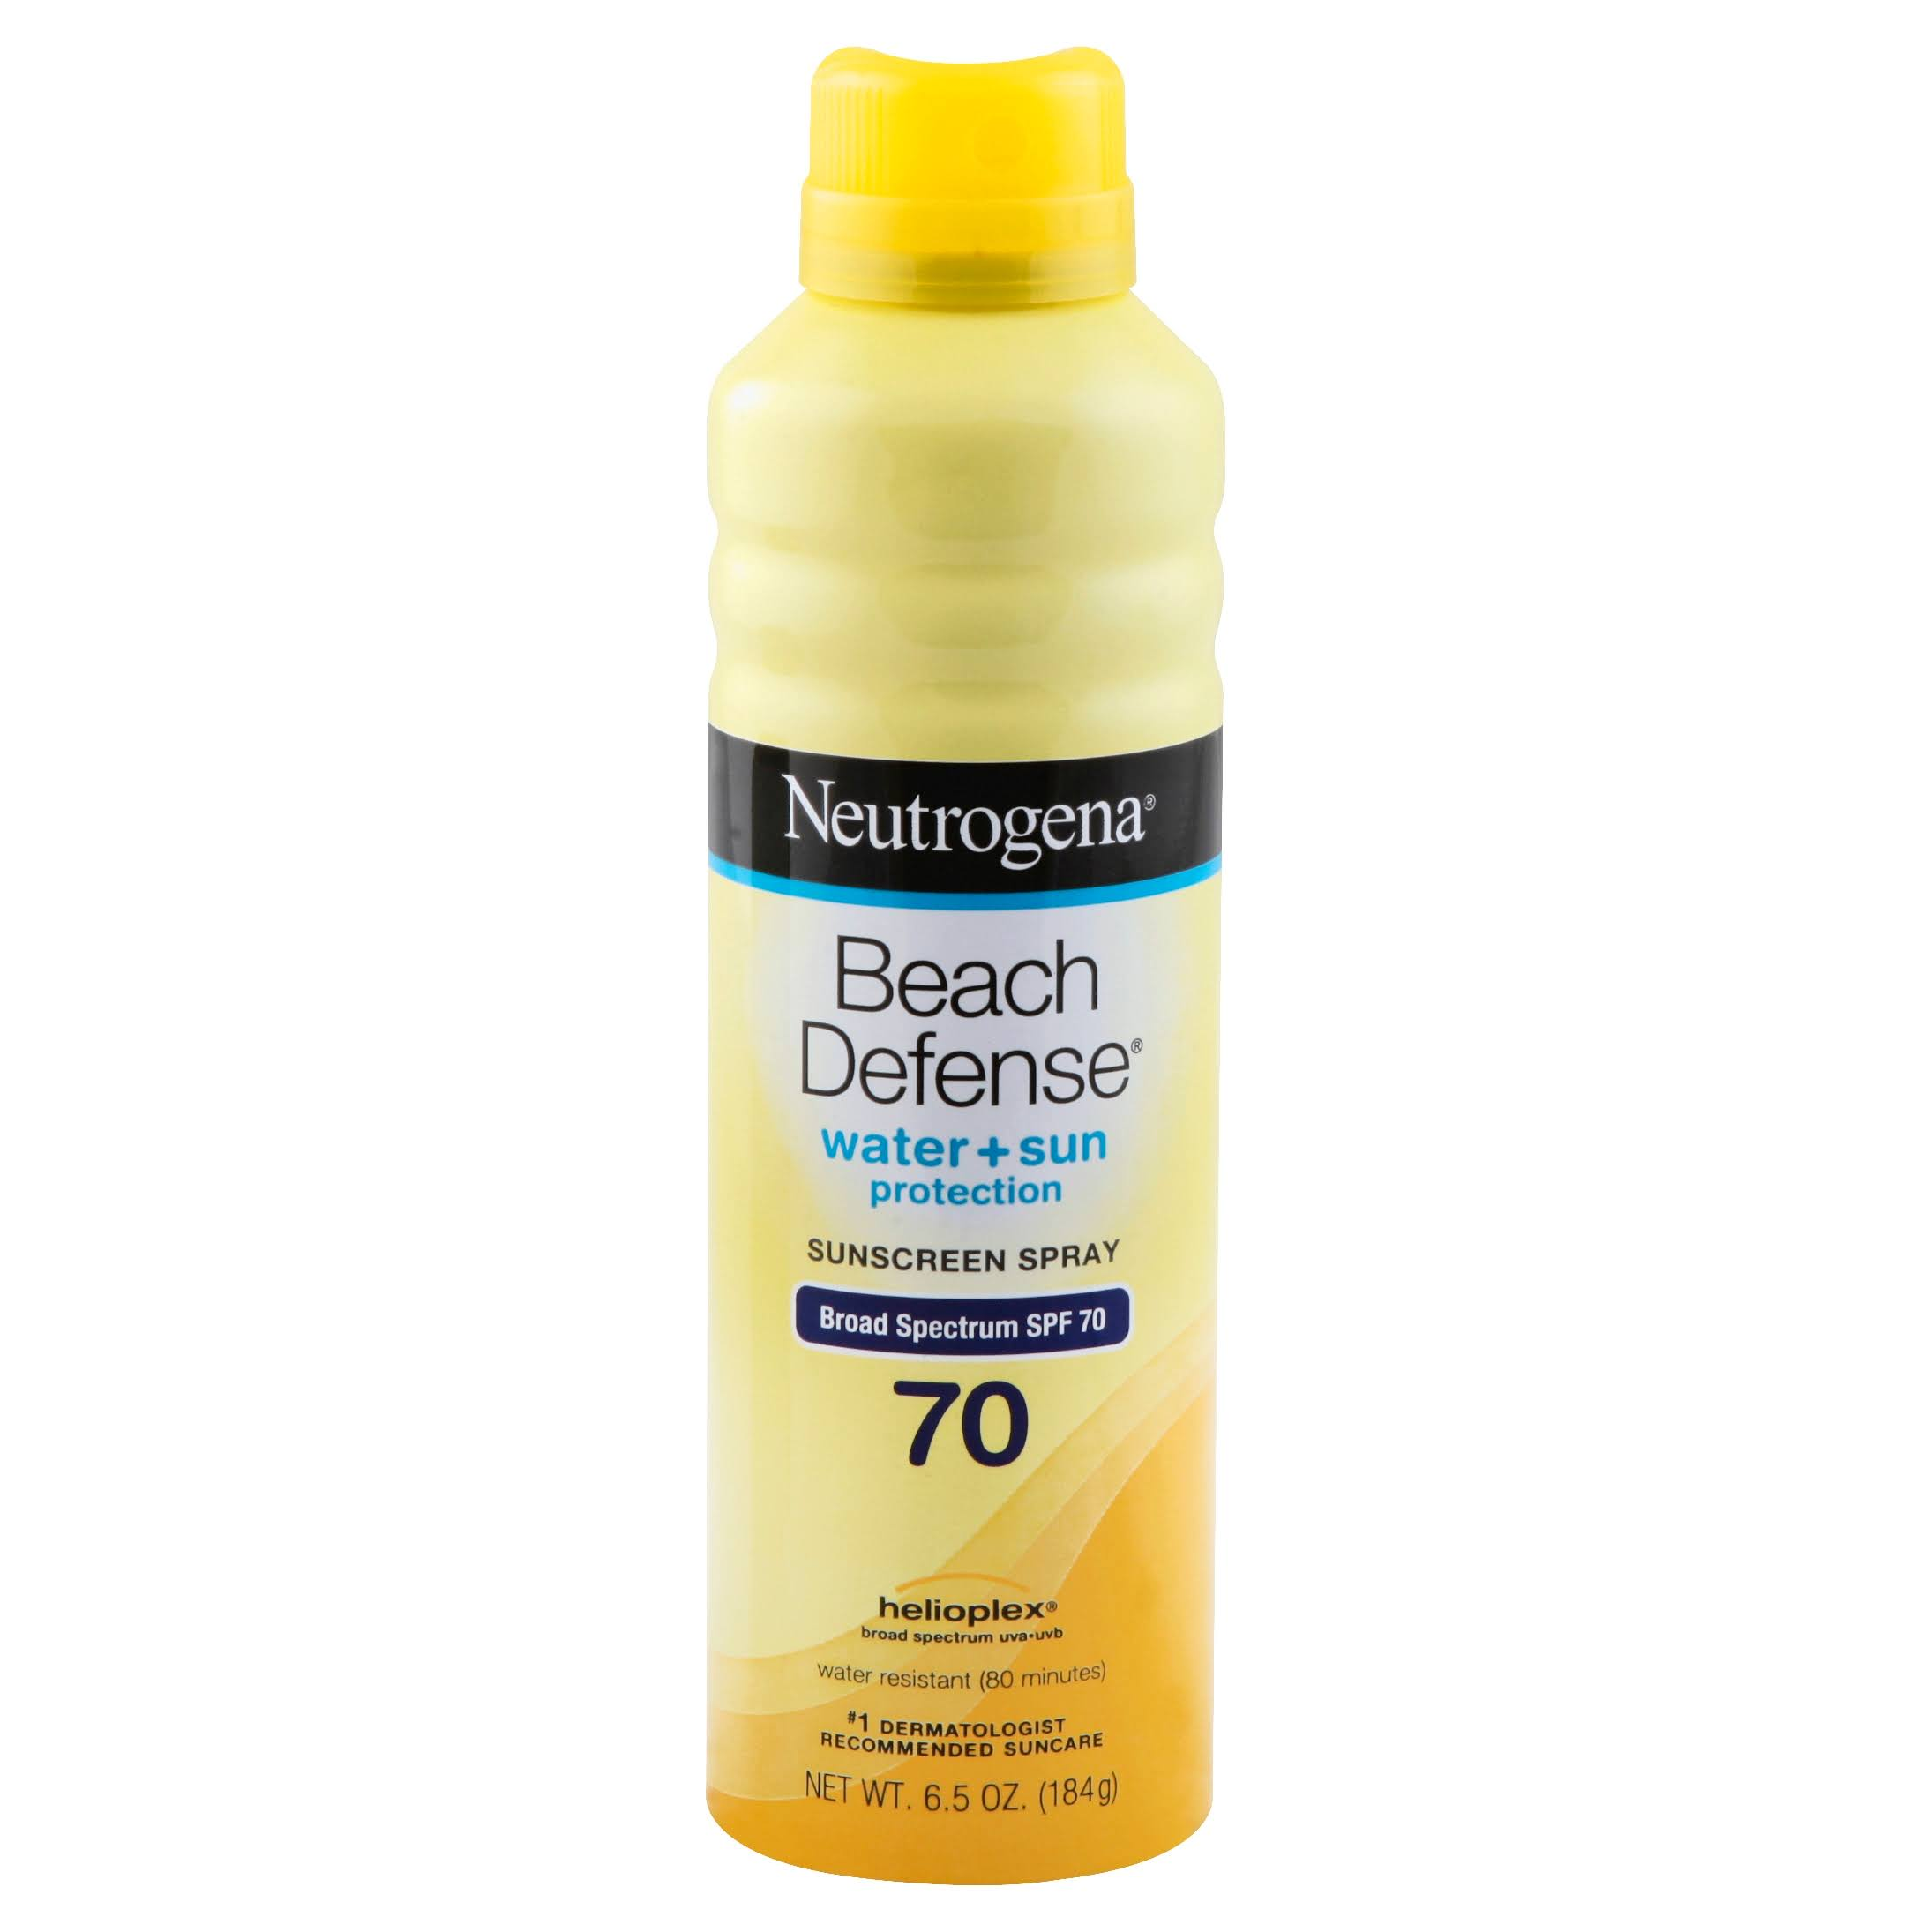 Neutrogena Beach Defense Sunscreen Spray Broad Spectrum - SPF 70, 6.5oz